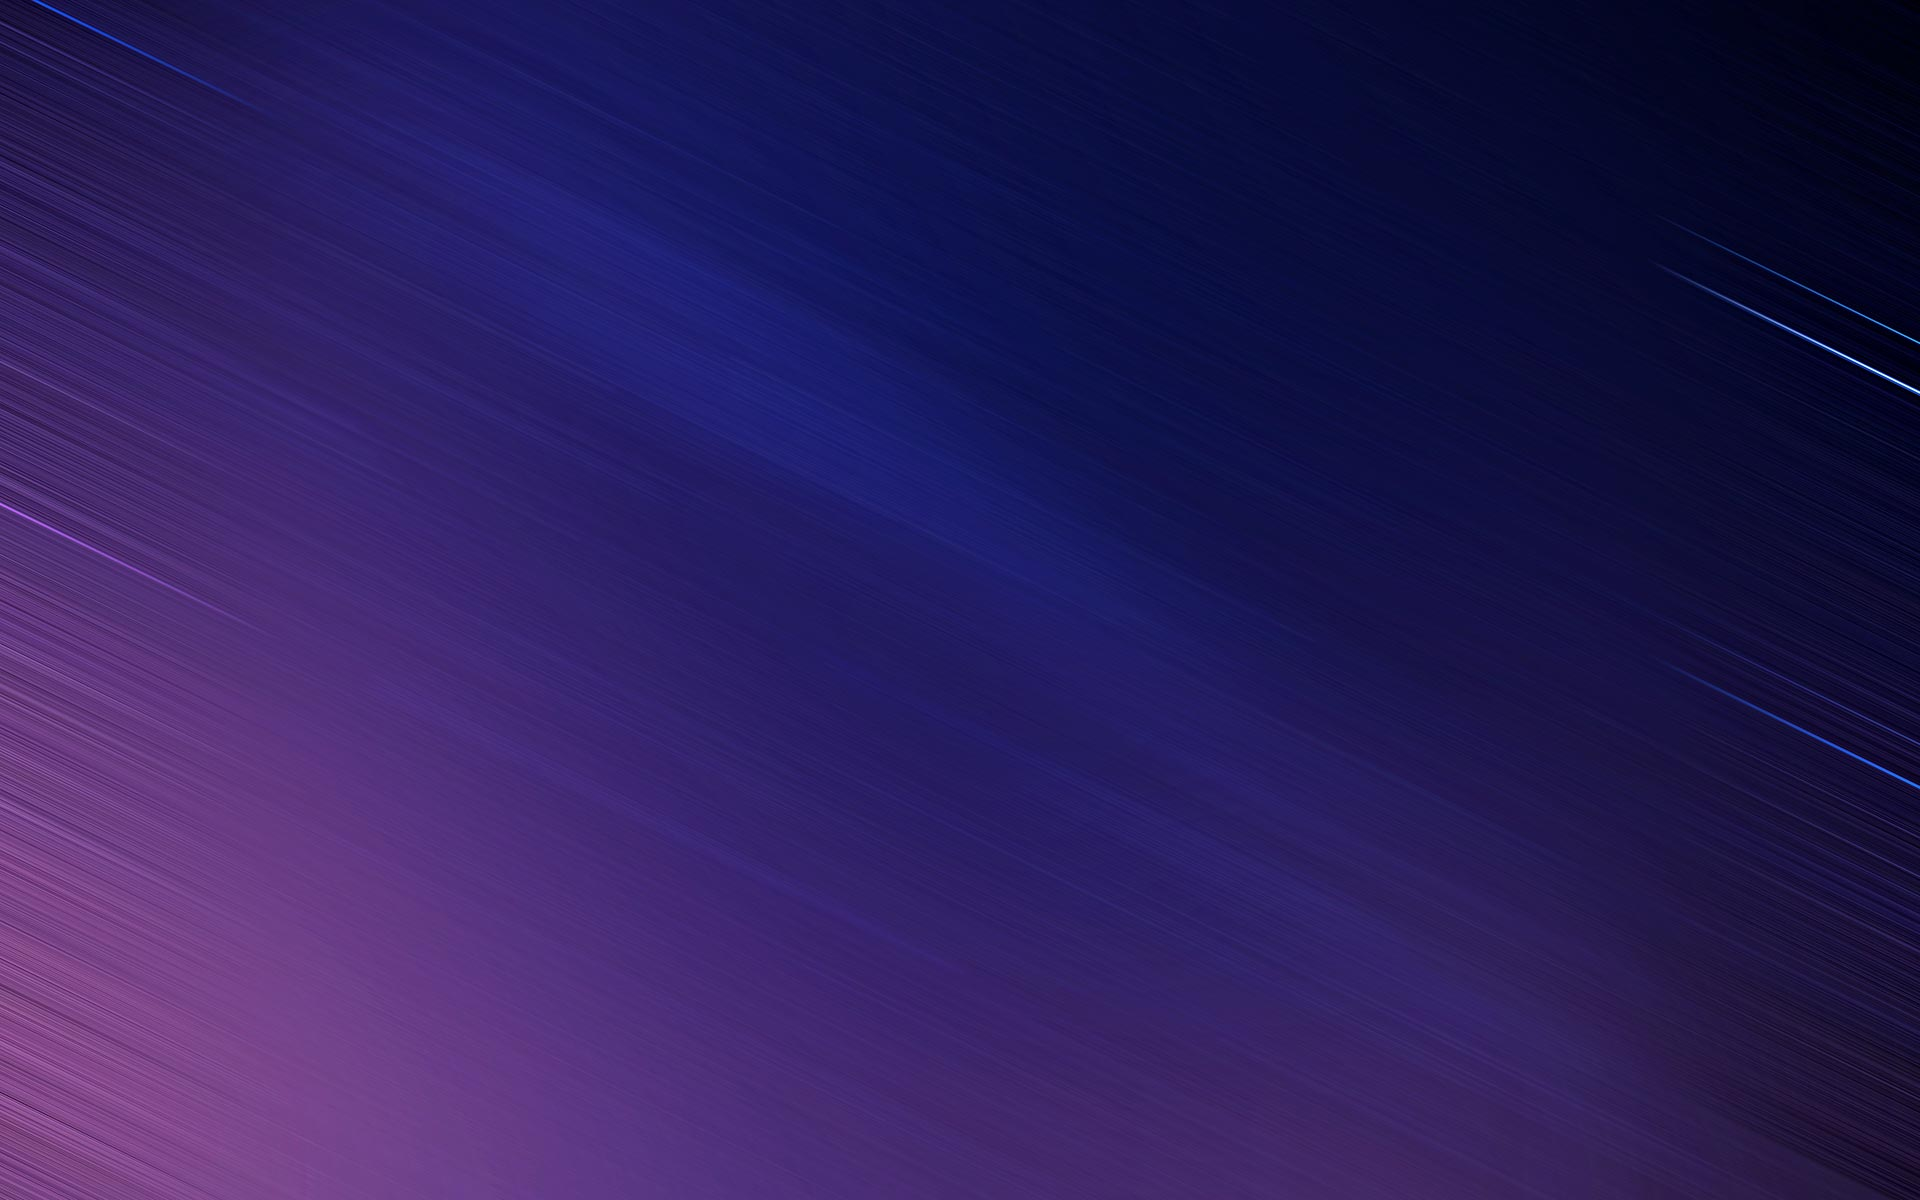 Blue and Violet Motion Background   Undesignsnet 1920x1200